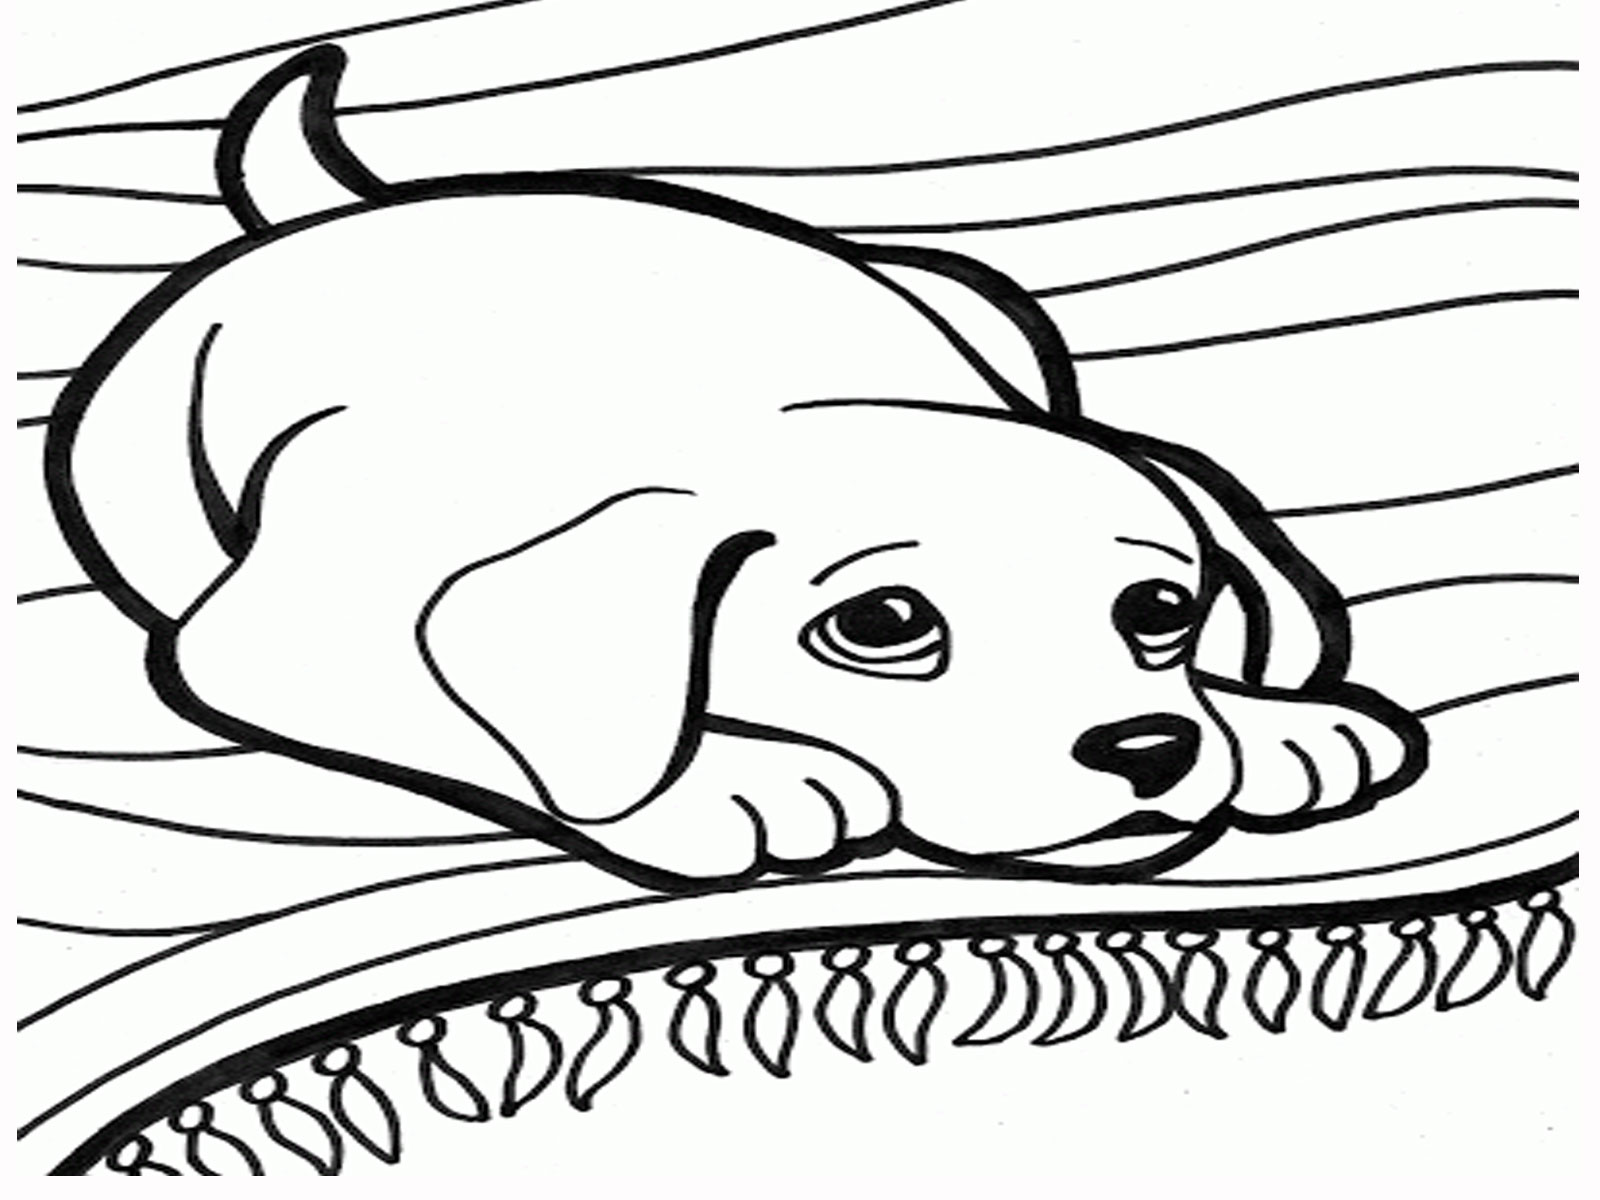 Faithful animal Dog 20 Dog coloring pages Free Printables